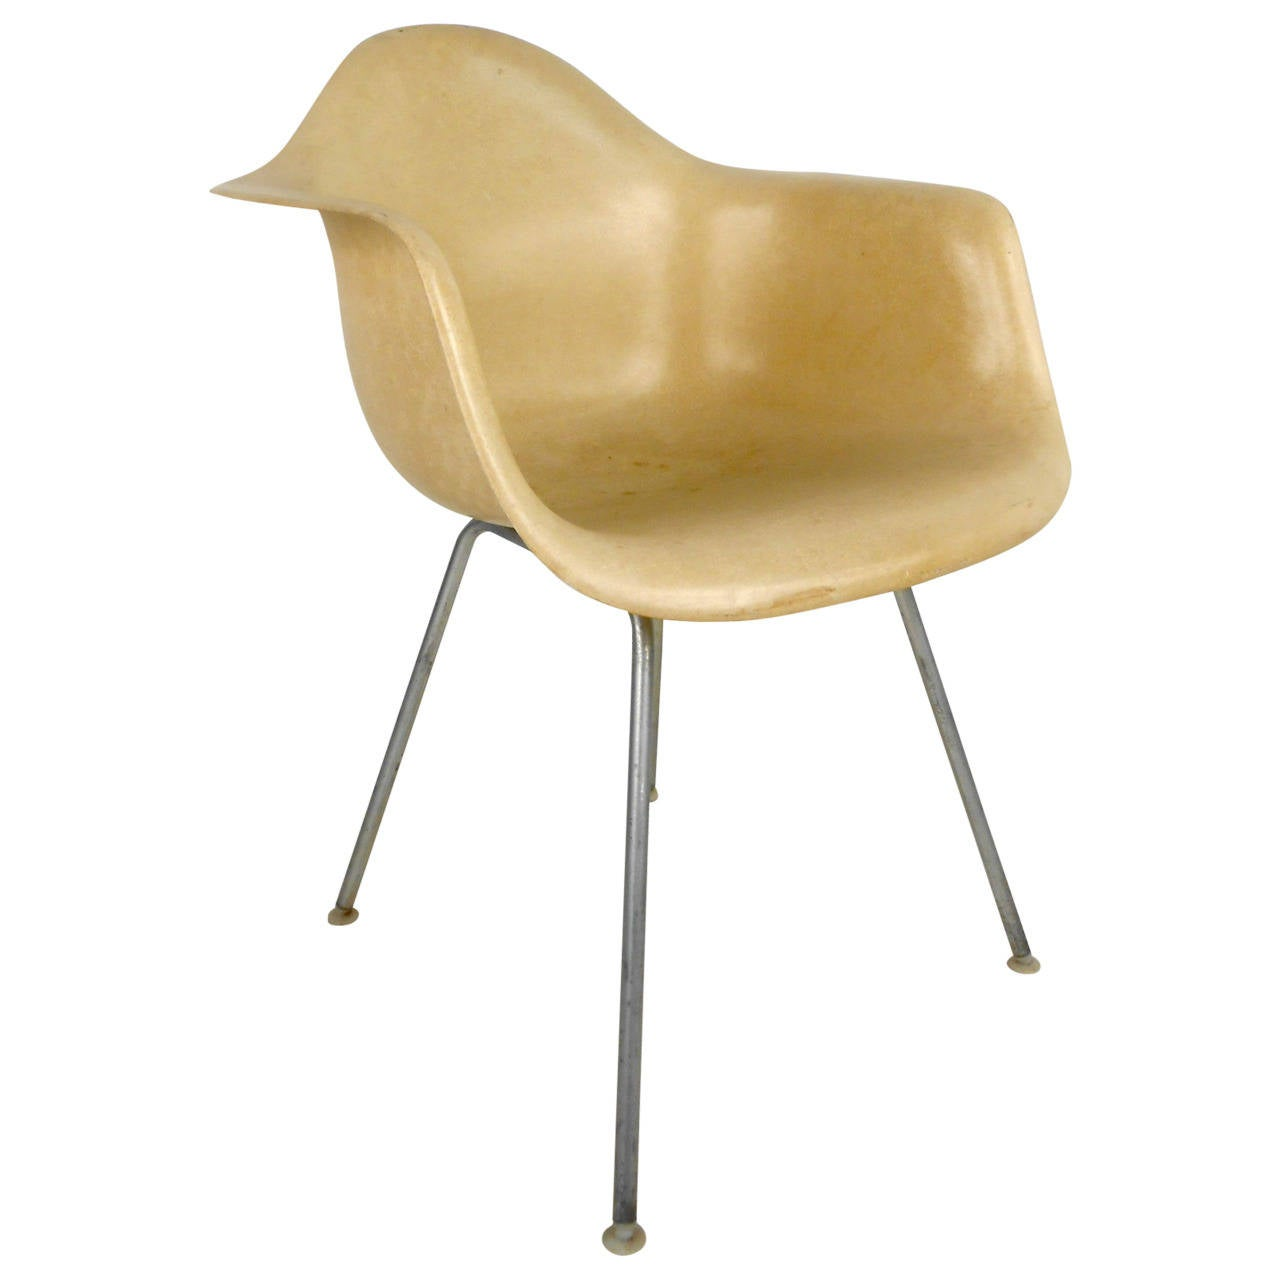 MidCentury Modern Fiberglass Shell Chair by Eames for